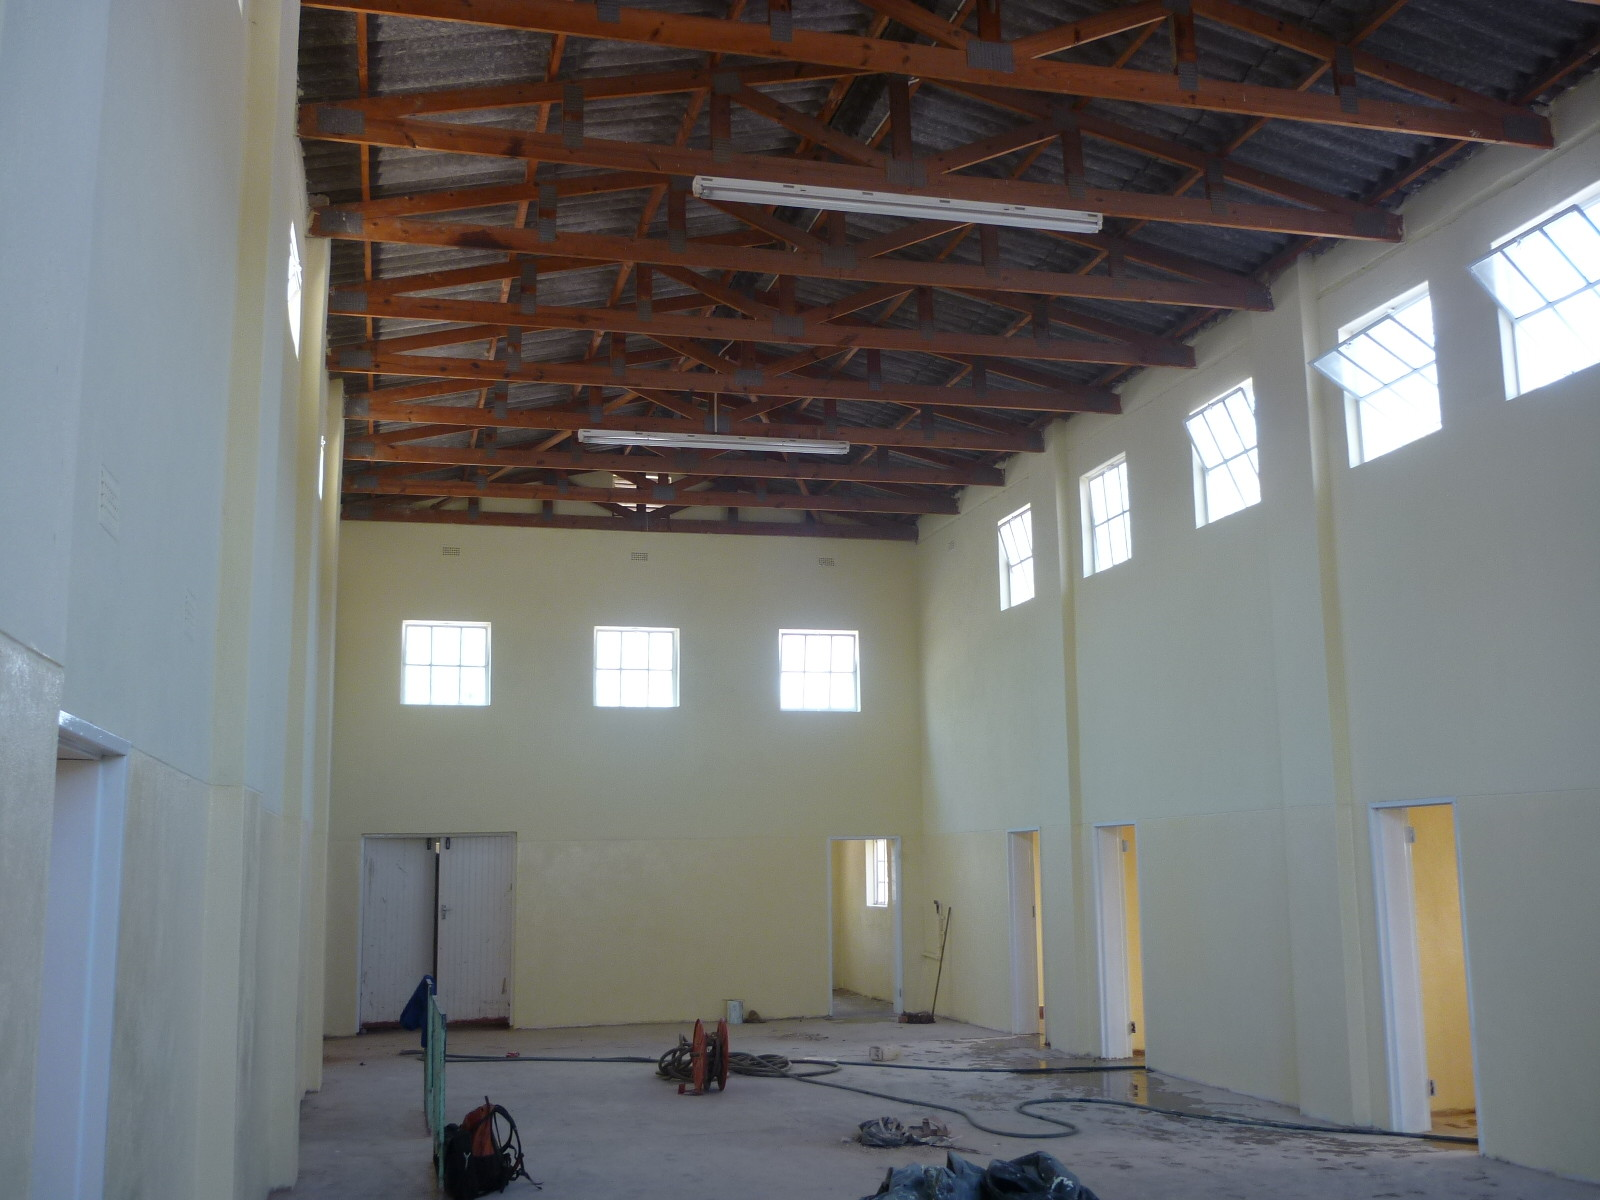 Inside of the waiting area with improved airflow, cosmetic and structural improvements.